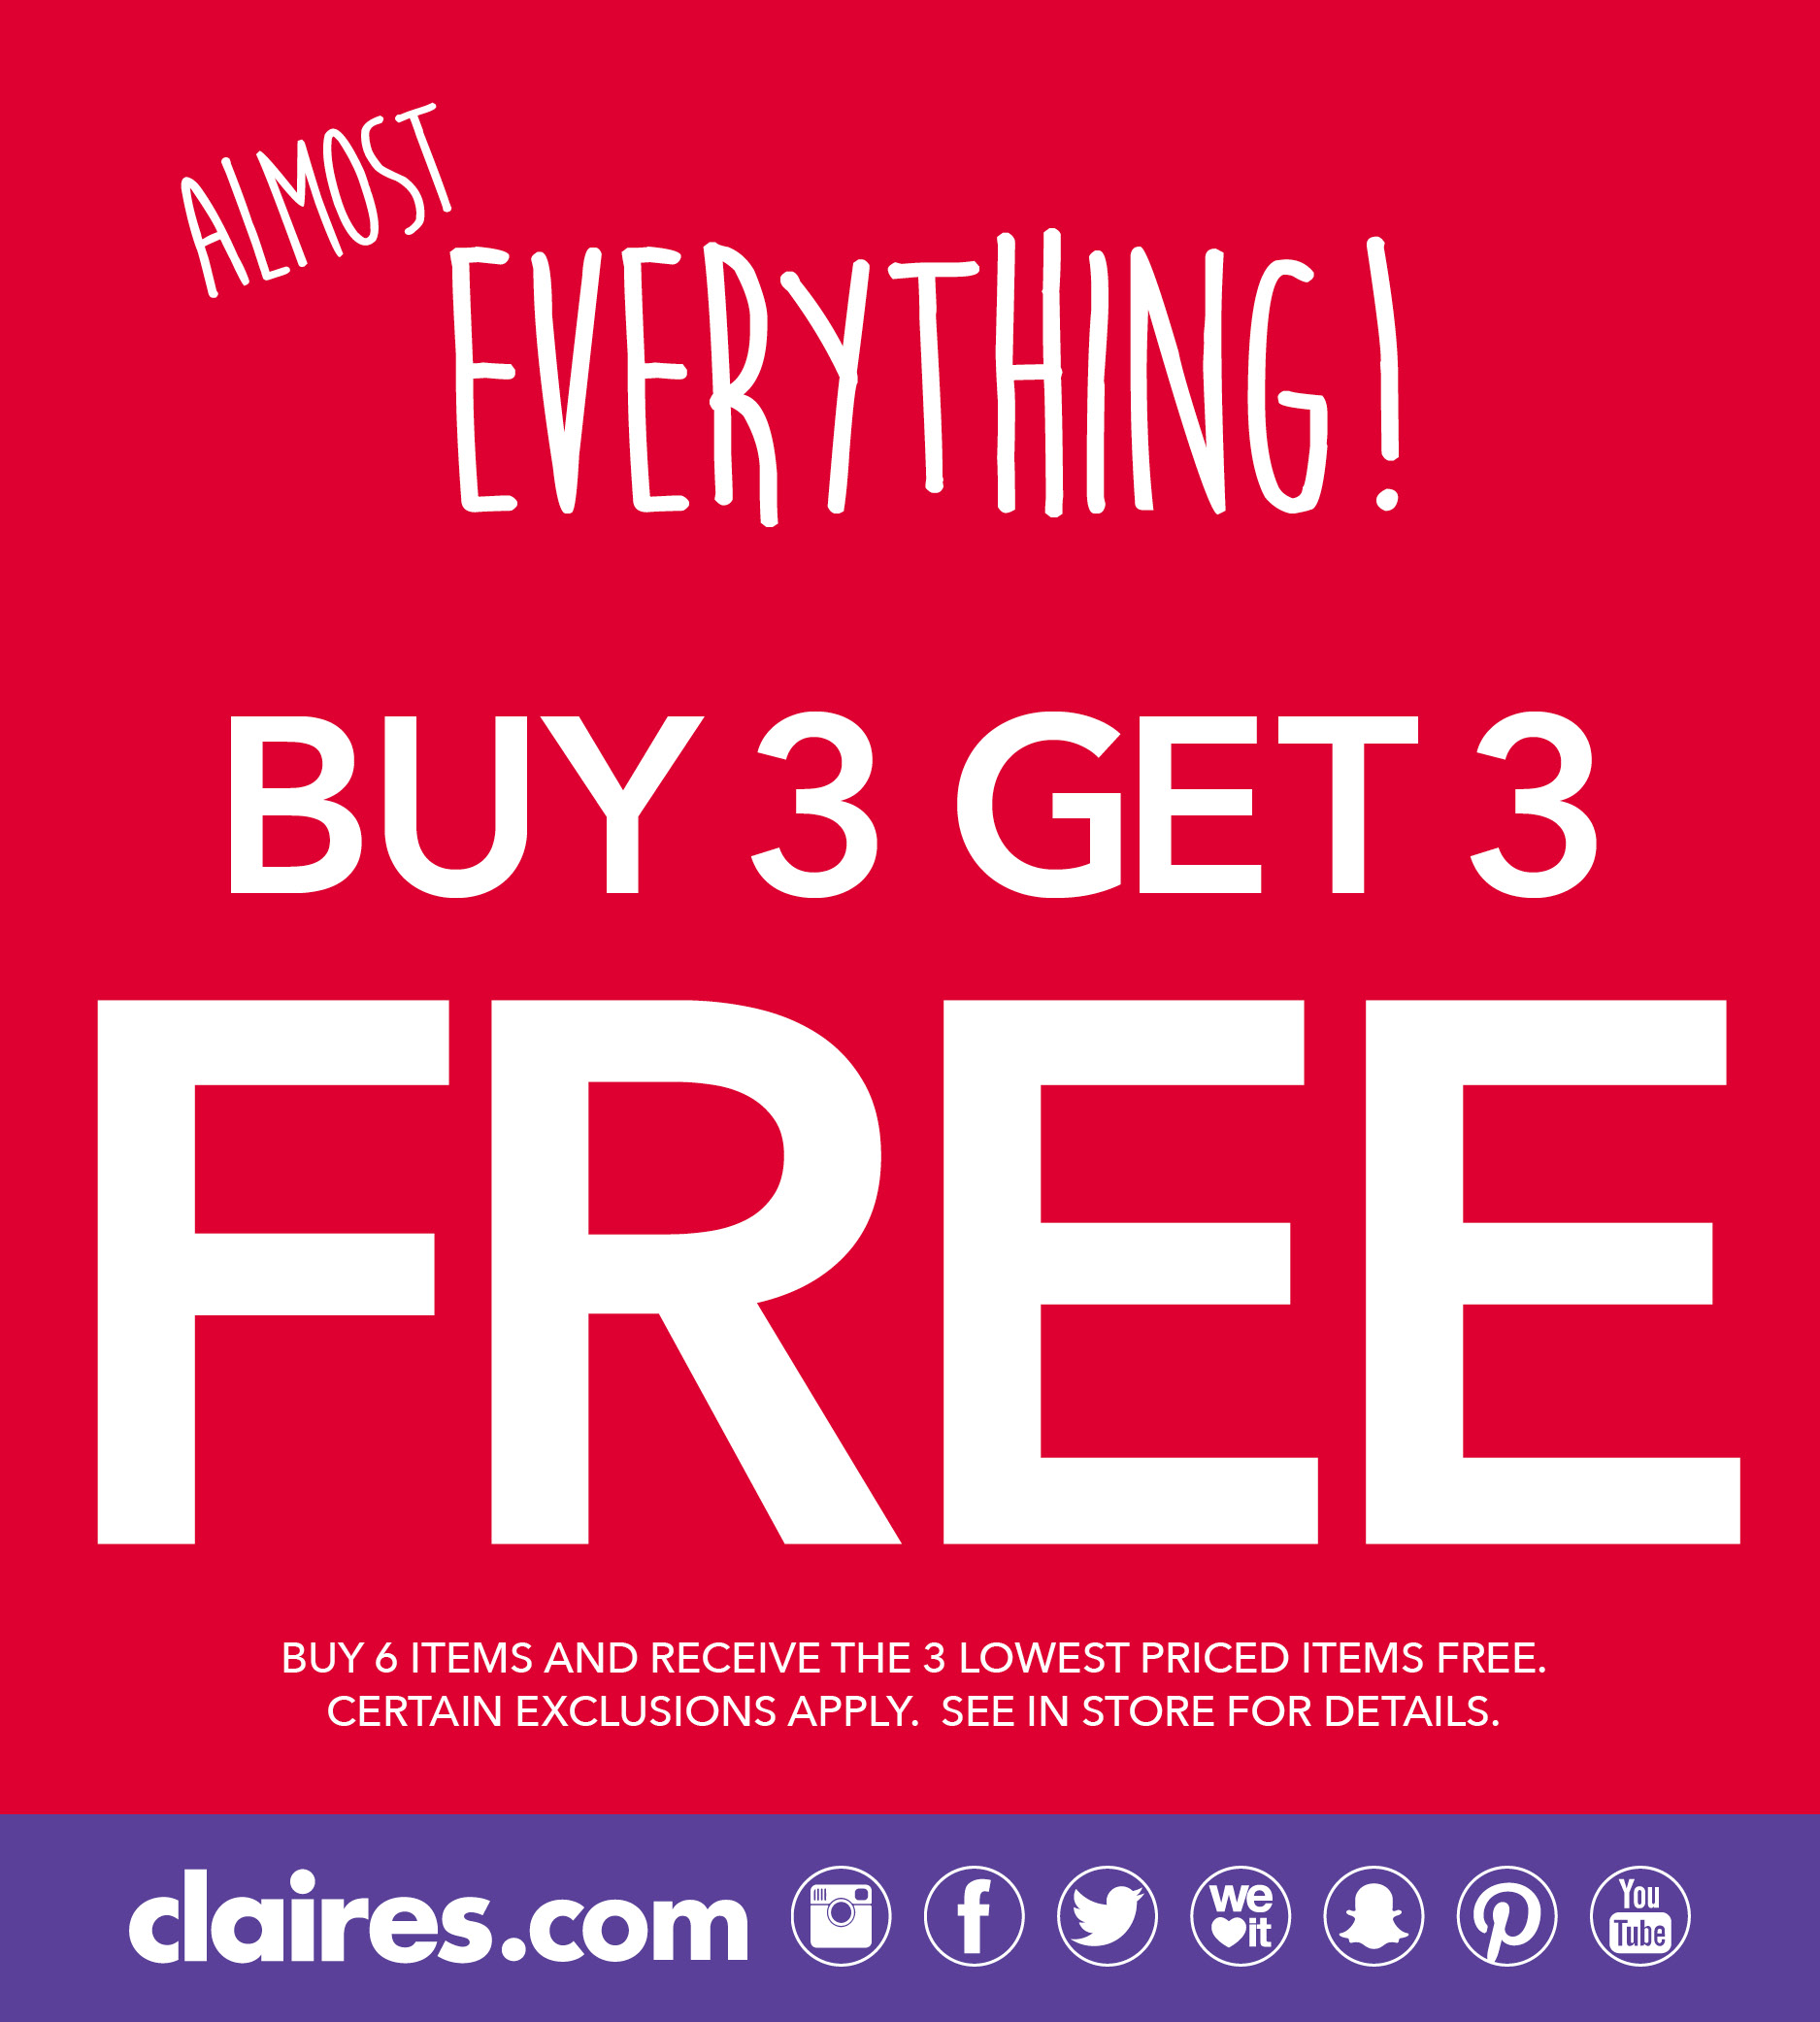 Almost Everything Buy 3 Get 3 FREE Promo Ad